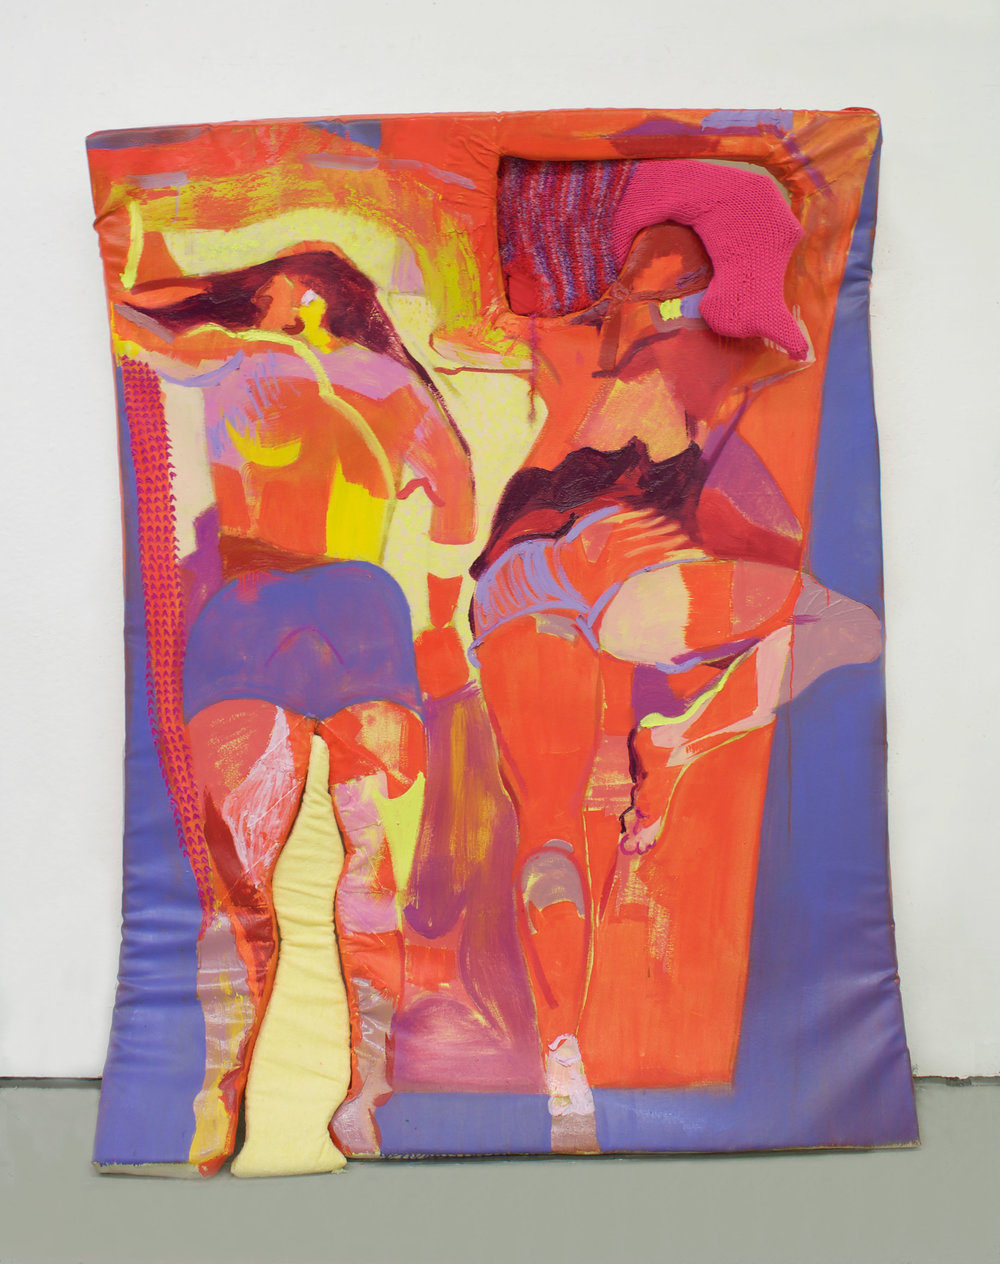 <br><b>Janet Loren Hill</b><br>Towel Tight Between Your Red Hot Thighs<br>6 ft x 4.5 ft x 8 in